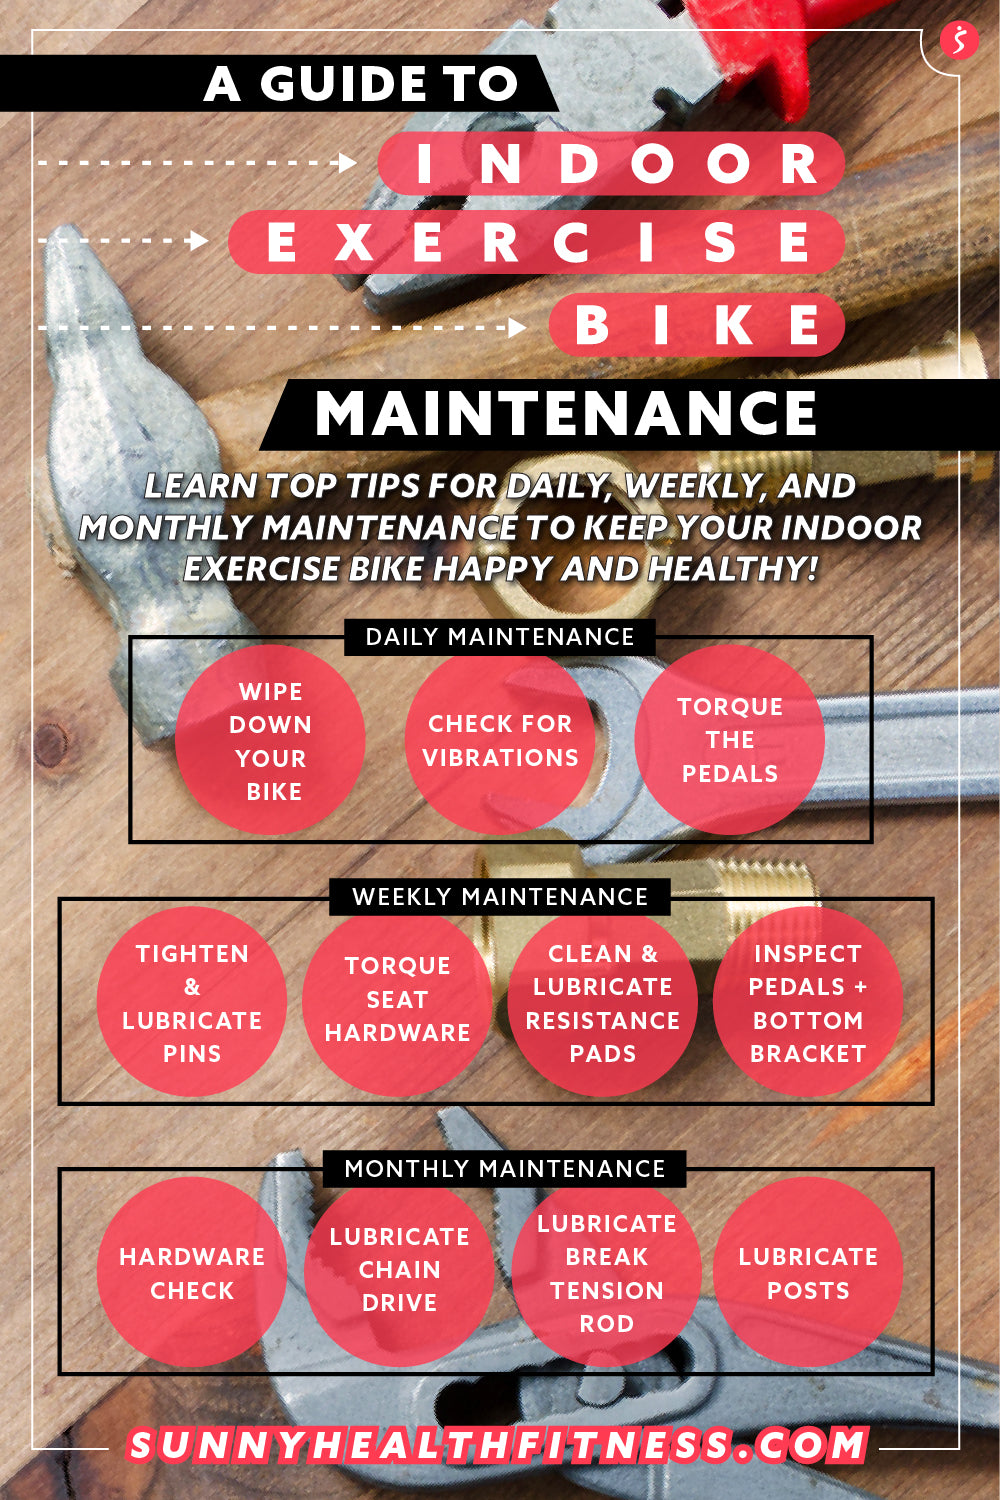 Indoor Exercise Bike Maintenance Guide Infographic